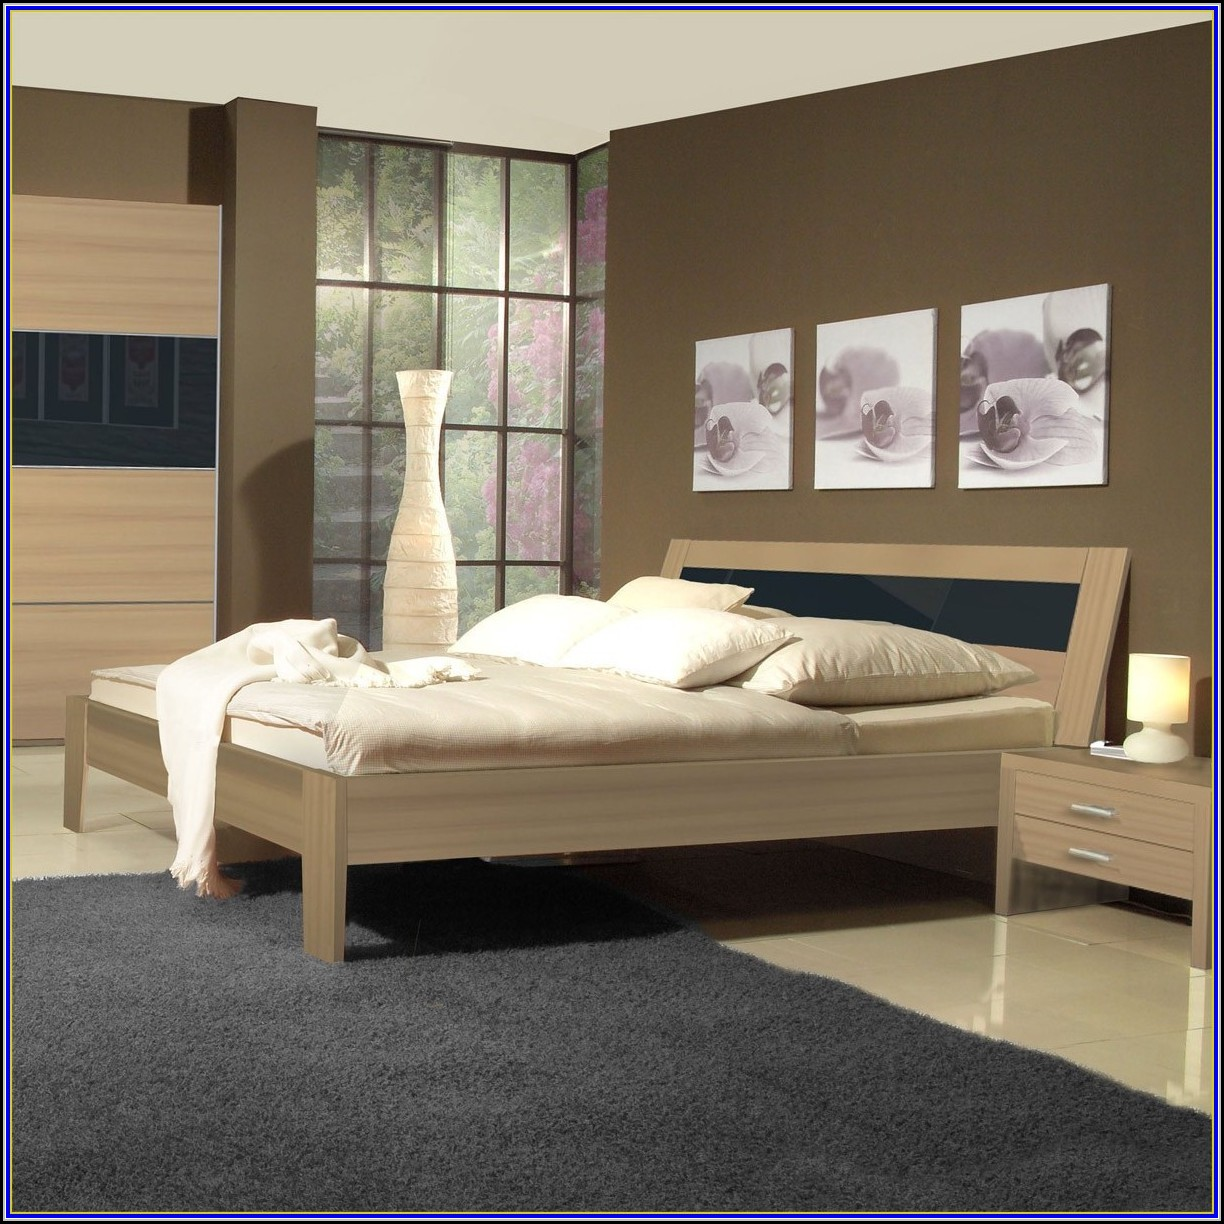 bett buche nachbildung 140x200 betten house und dekor. Black Bedroom Furniture Sets. Home Design Ideas